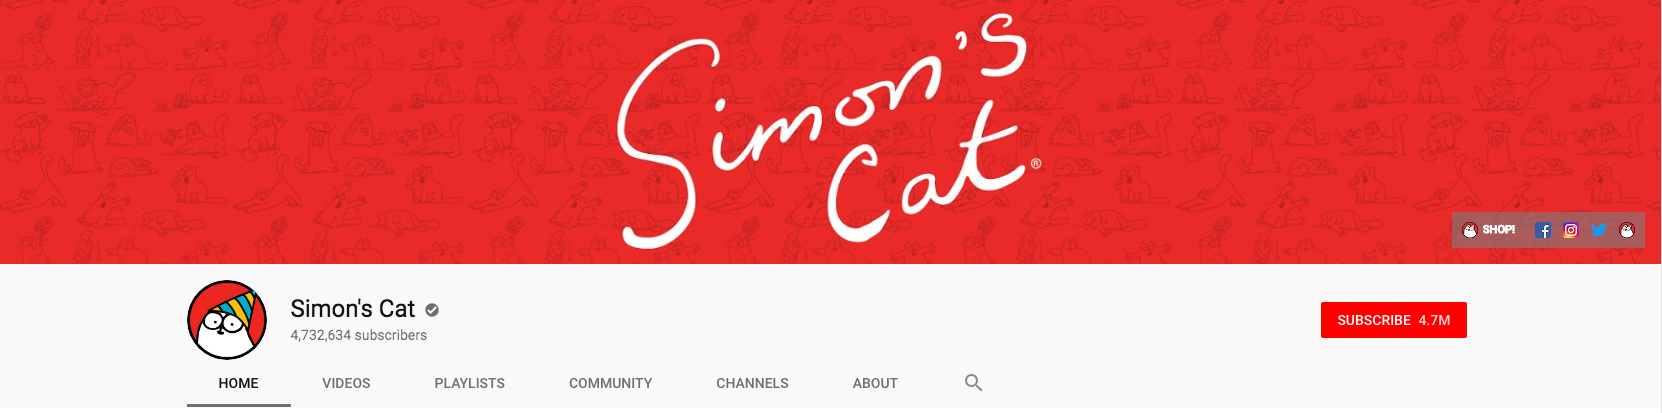 YouTube banner for Simon's Cat channel